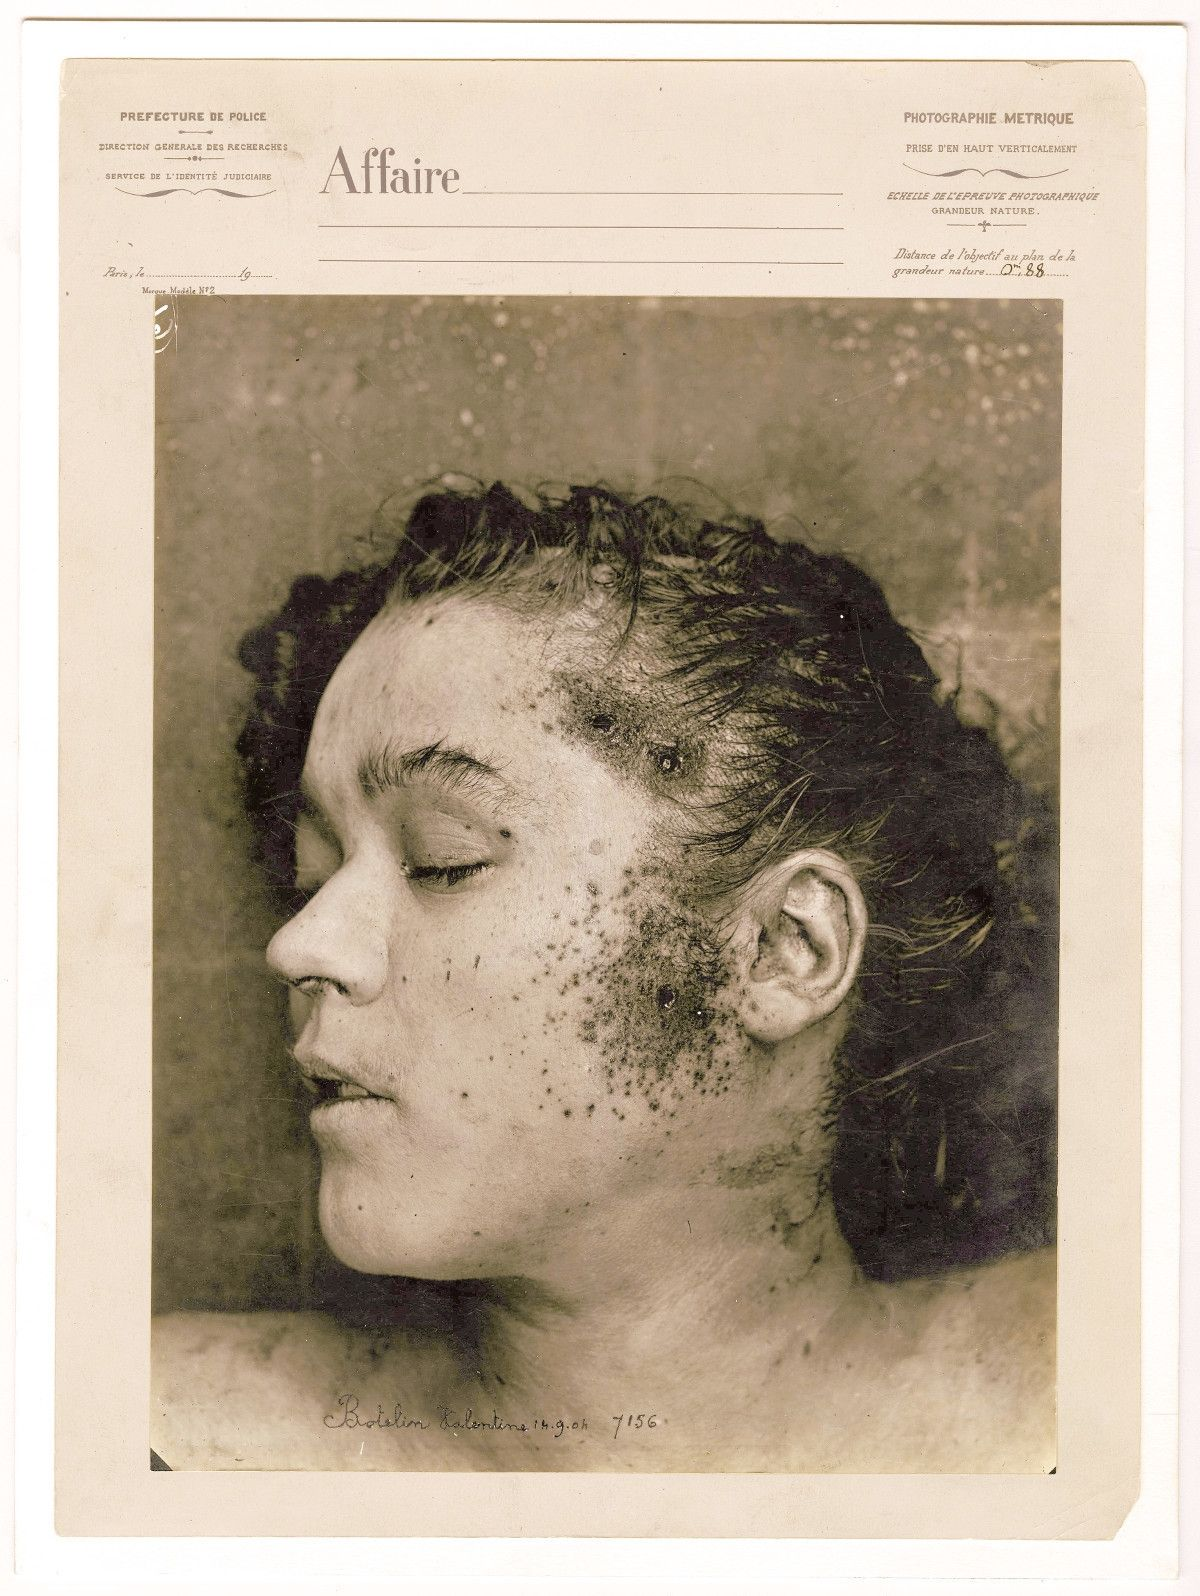 Valentine Botelin following her autopsy on September 14, 1904. After her head and hair were cleaned, the police were able to observe wounds made by three projectiles from a firearm on the woman's temple and left cheek.